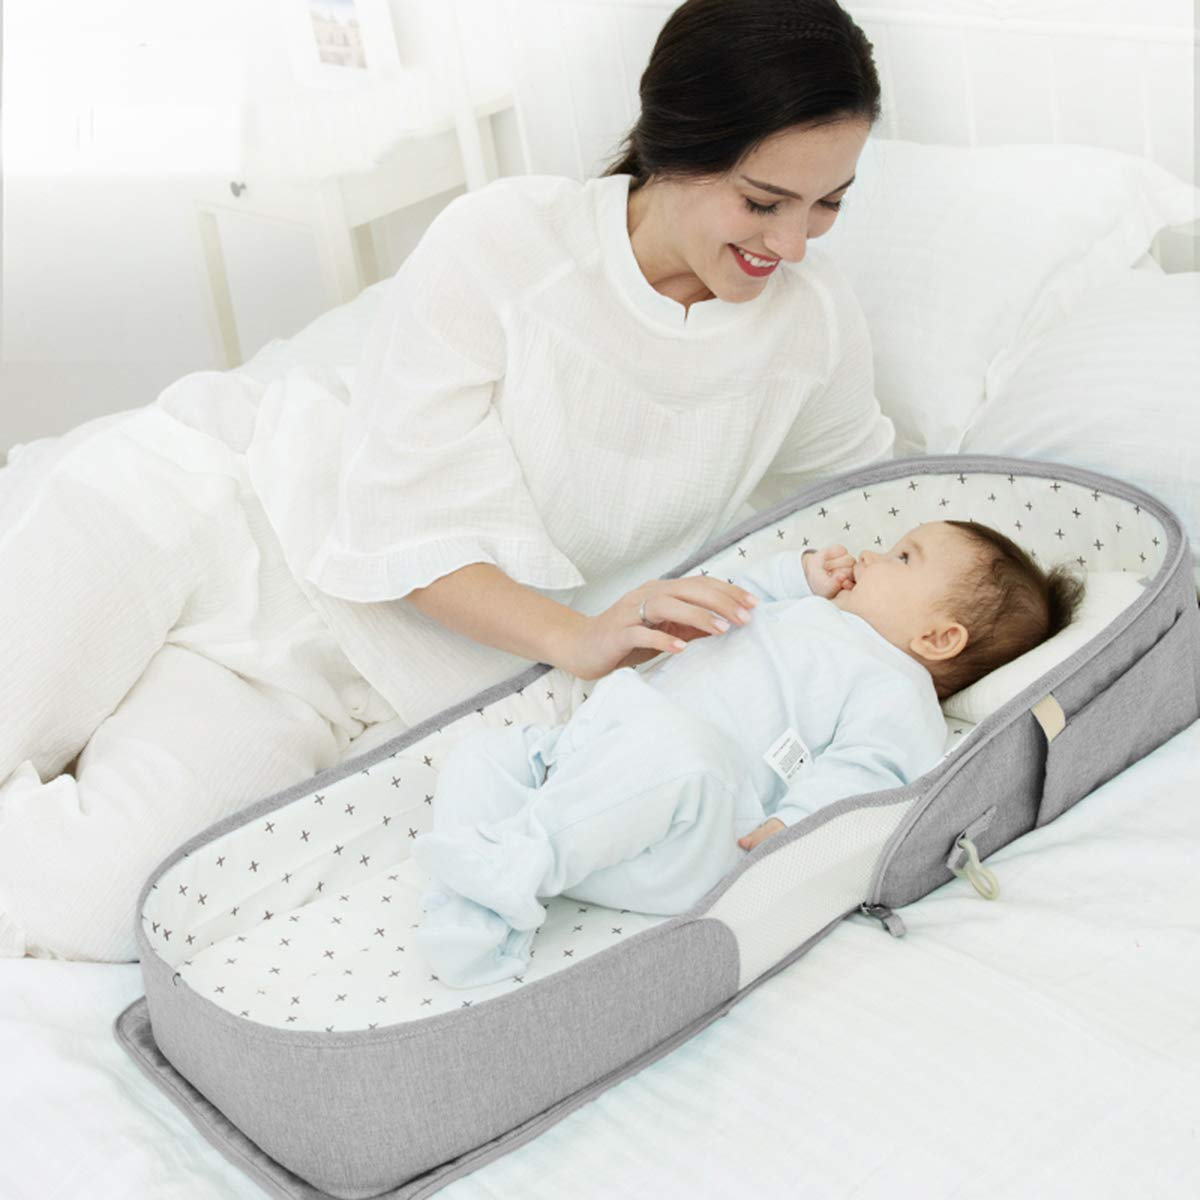 SUNVENO Infant Travel Crib Portable Travel Bed Foldable Newborn Travel Bassinet Backpack with Soft 100% Cotton Mattress, Baby Lounge Beside Sleeper Multi-Function for 0-12 Months, Grey